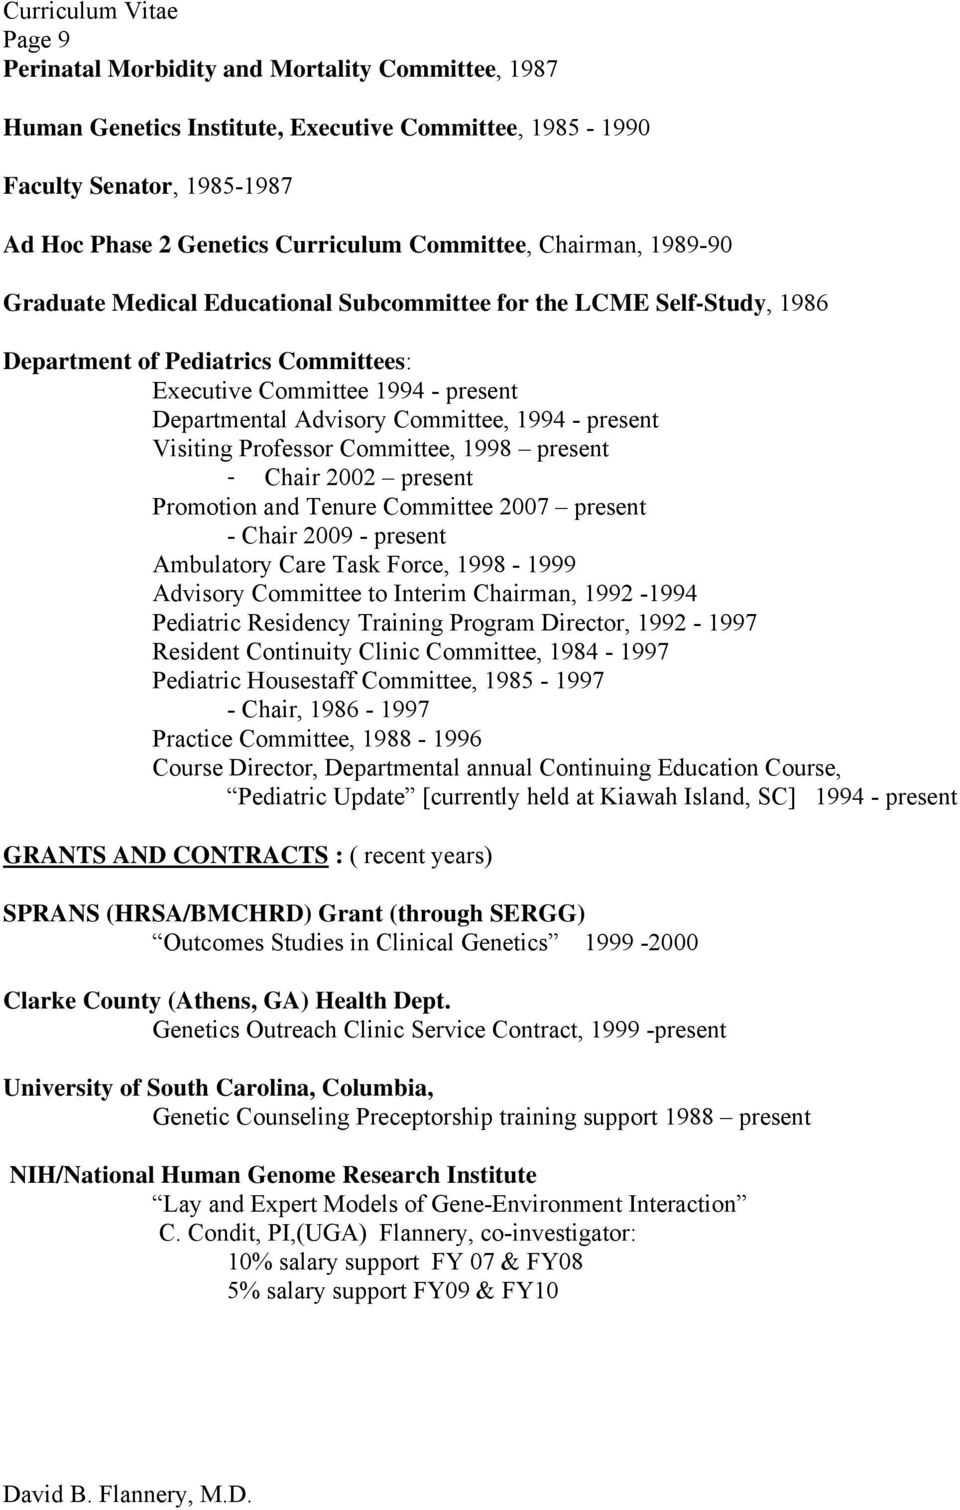 Committee, 1994 - present Visiting Professor Committee, 1998 present - Chair 2002 present Promotion and Tenure Committee 2007 present - Chair 2009 - present Ambulatory Care Task Force, 1998-1999